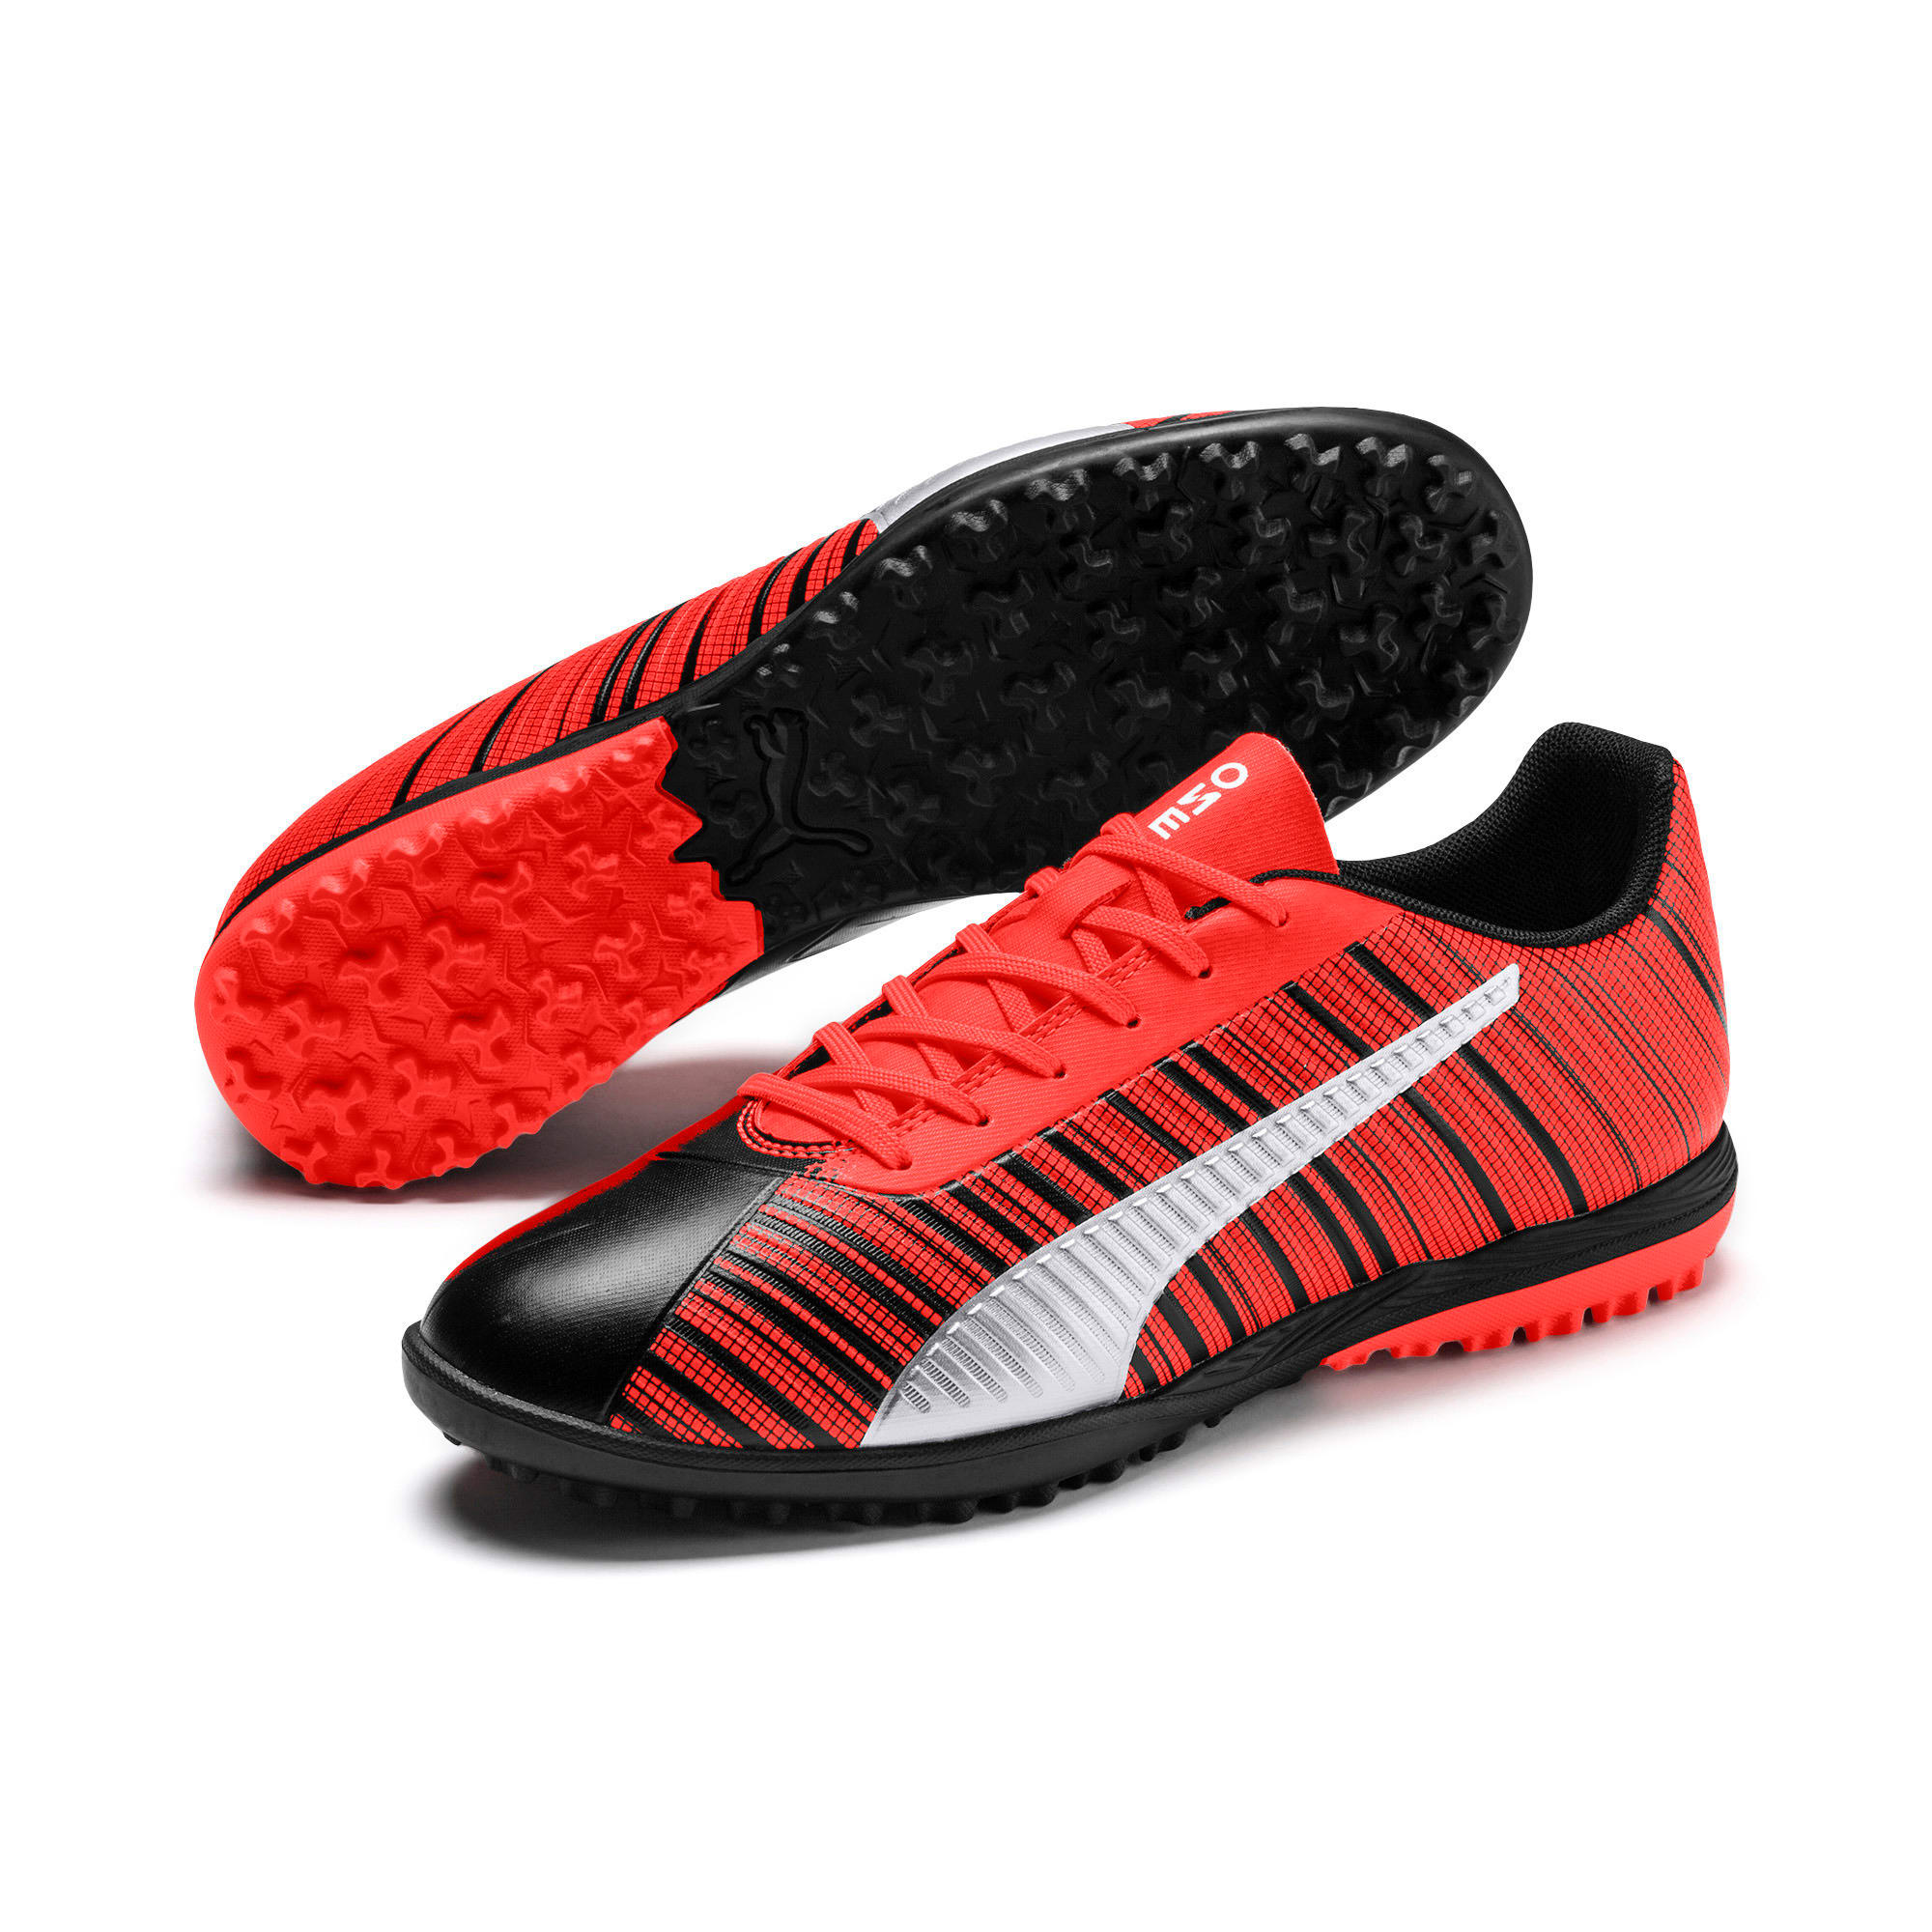 Thumbnail 3 of PUMA ONE 5.4 TT Herren Fußballschuhe, Black-Nrgy Red-Aged Silver, medium